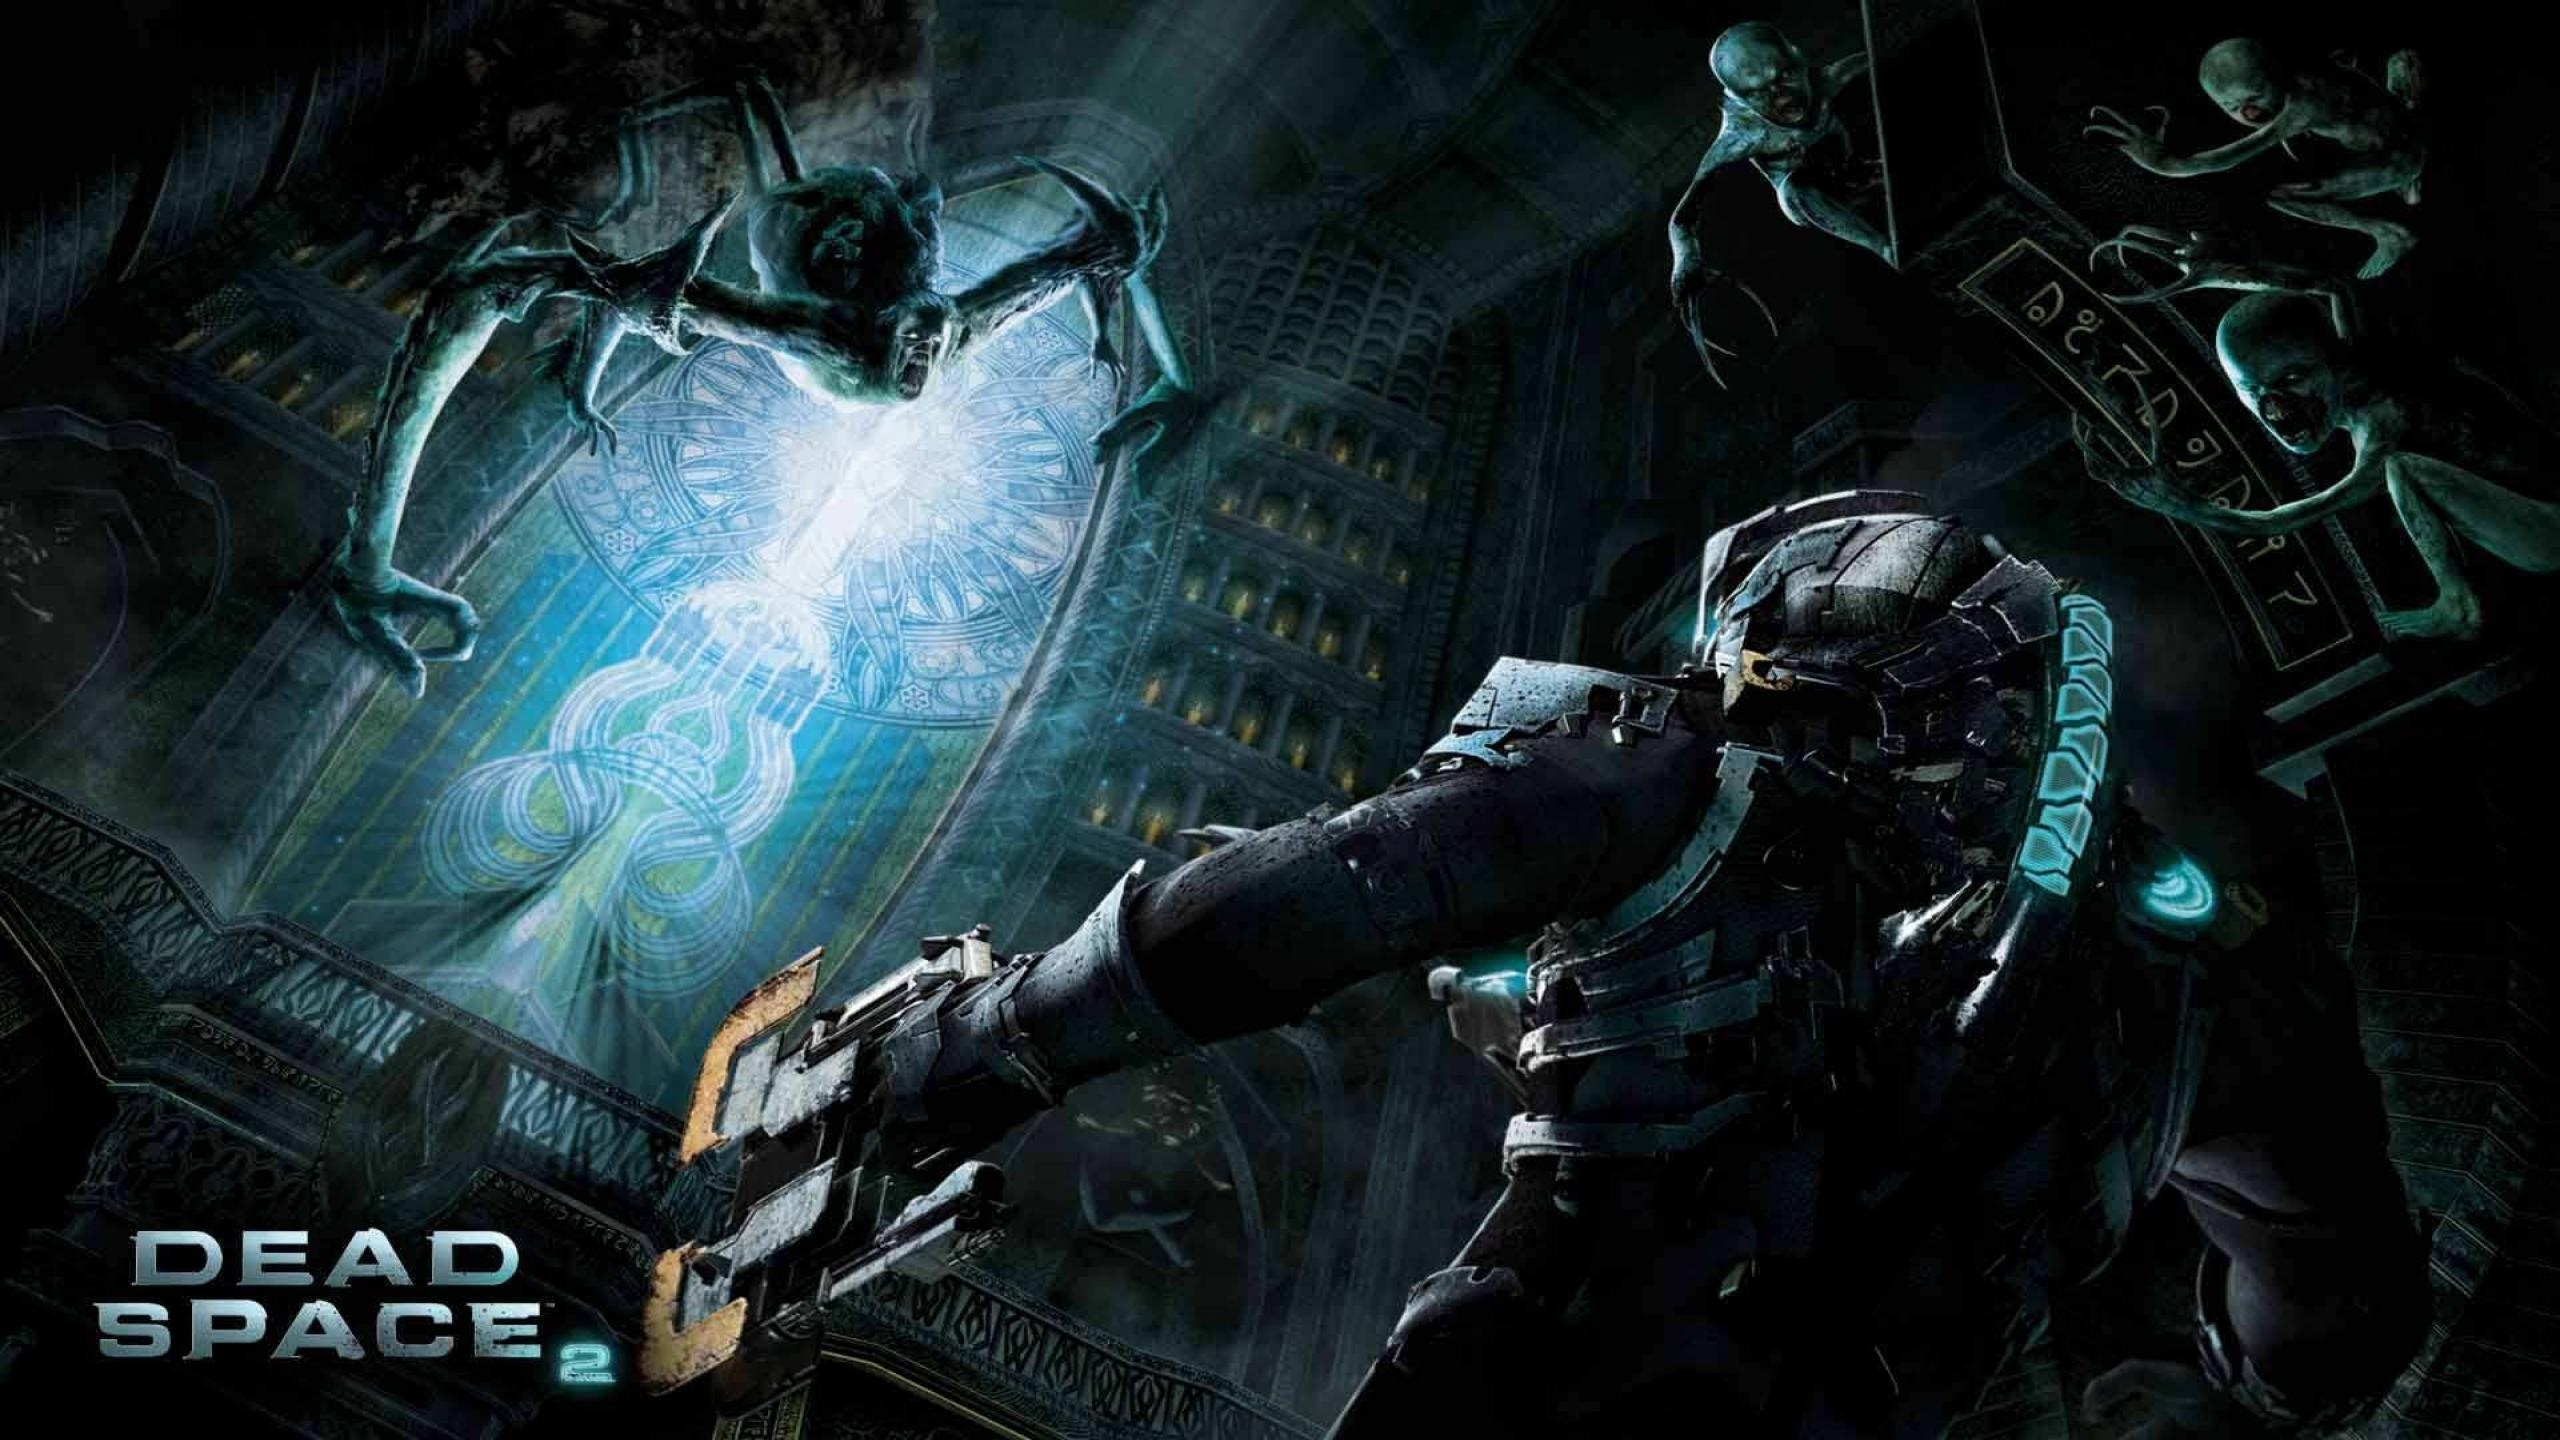 Title : hd video games wallpapers group (74+). Dimension : 2560 x 1440. File Type : JPG/JPEG